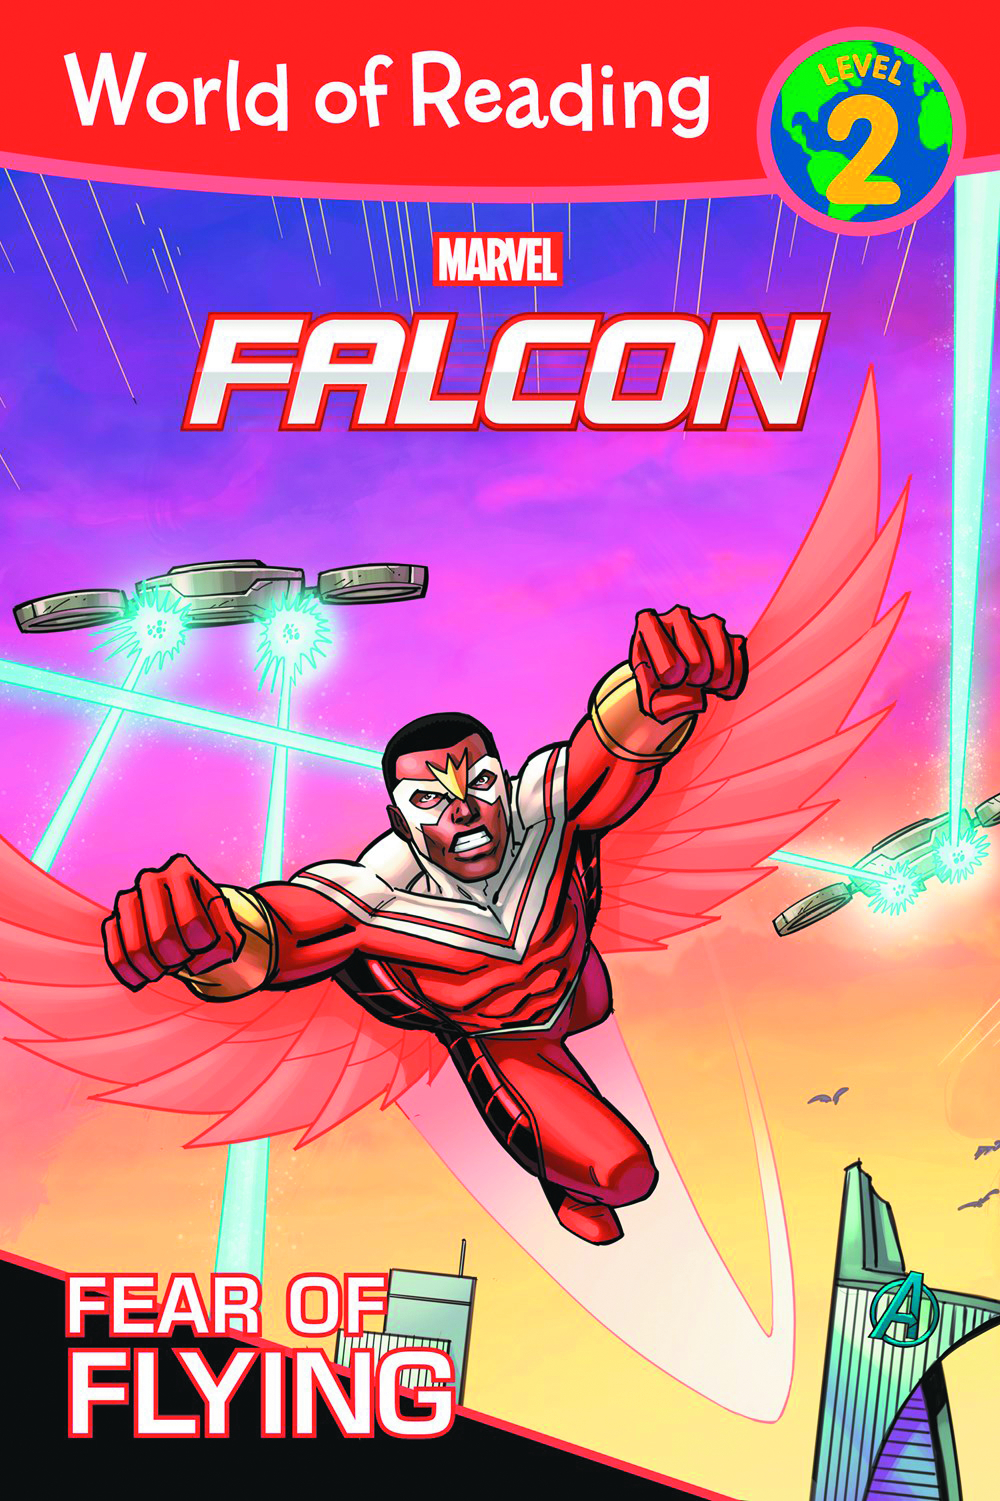 FALCON FEAR OF FLYING WORLD OF READING SC